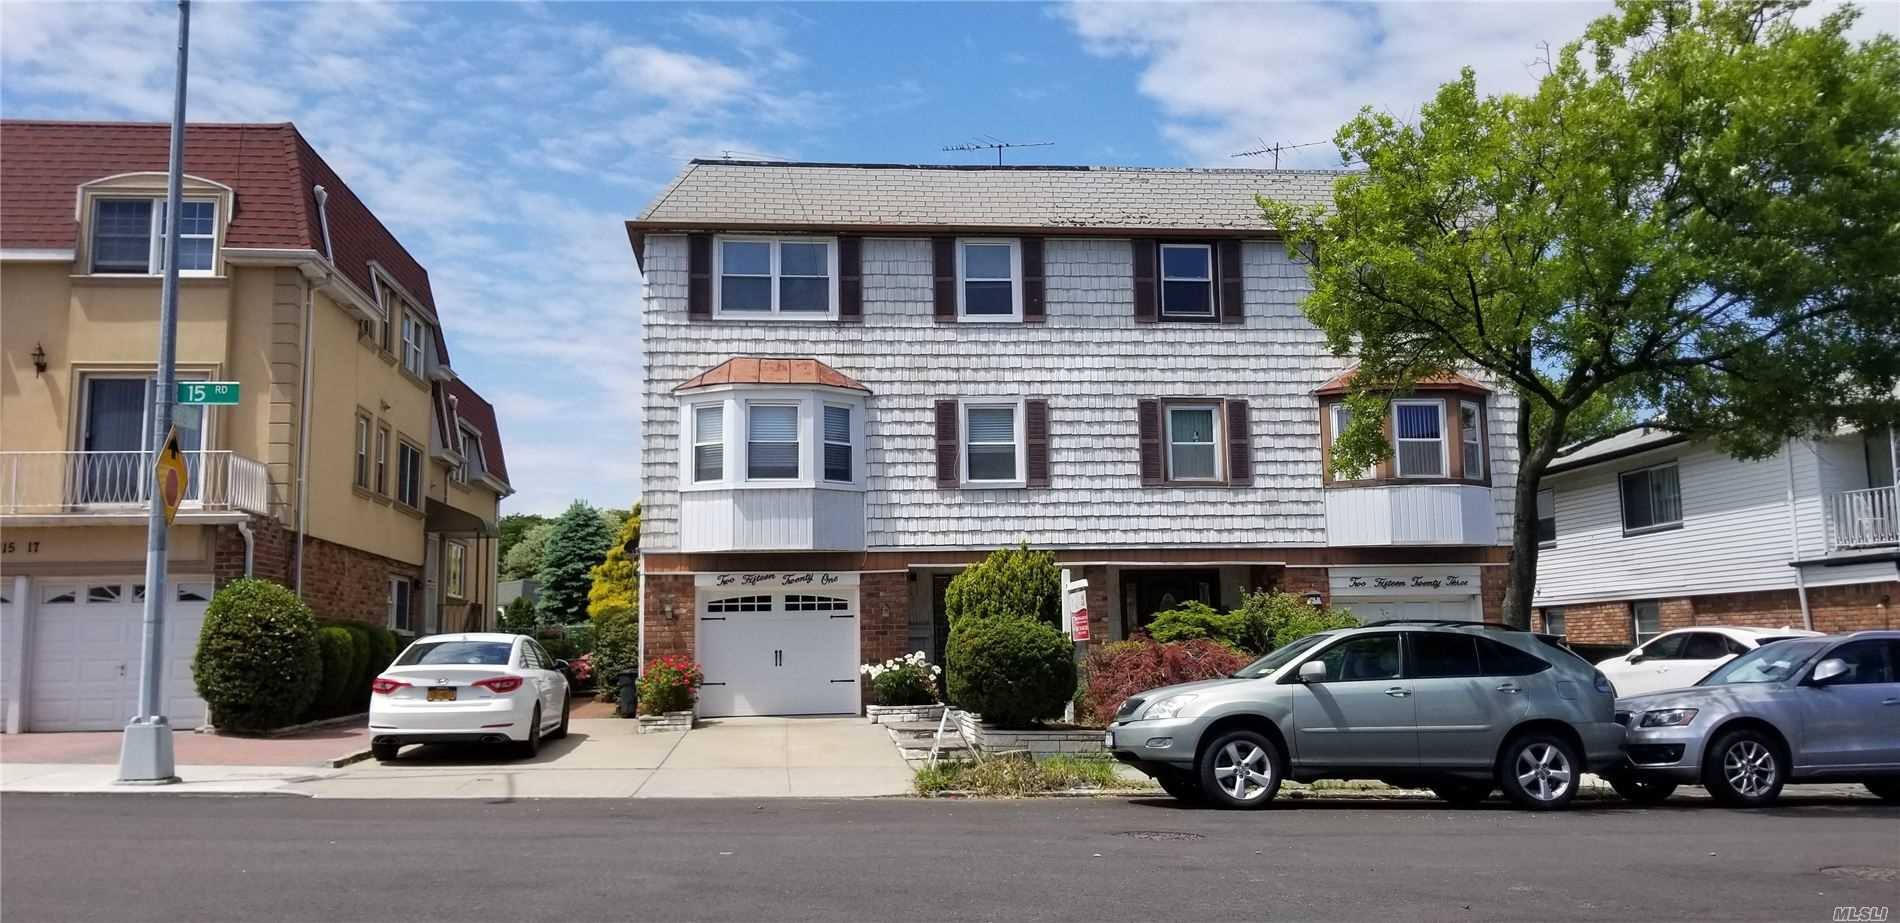 Spacious & Updated Triplex over Duplex 2 Family House in Bay Terrace, Beautifully Updated Kit with Granite C Top And SS Appliances, Bath Room with Jacuzzi, 4 Bay windows and Extended Dining Area, Hard wood Floor Throughout, 1 Car Grage,  Rent Apt with Washer and Dryer, No Lease. Very Convenient Area ; Near Schools, Shopping Mall, LIRR, Park, Golf Course, Exp Bus To Manhattan(QM2, QM32) Q13, 16, 28, Easy To Access Major Highway